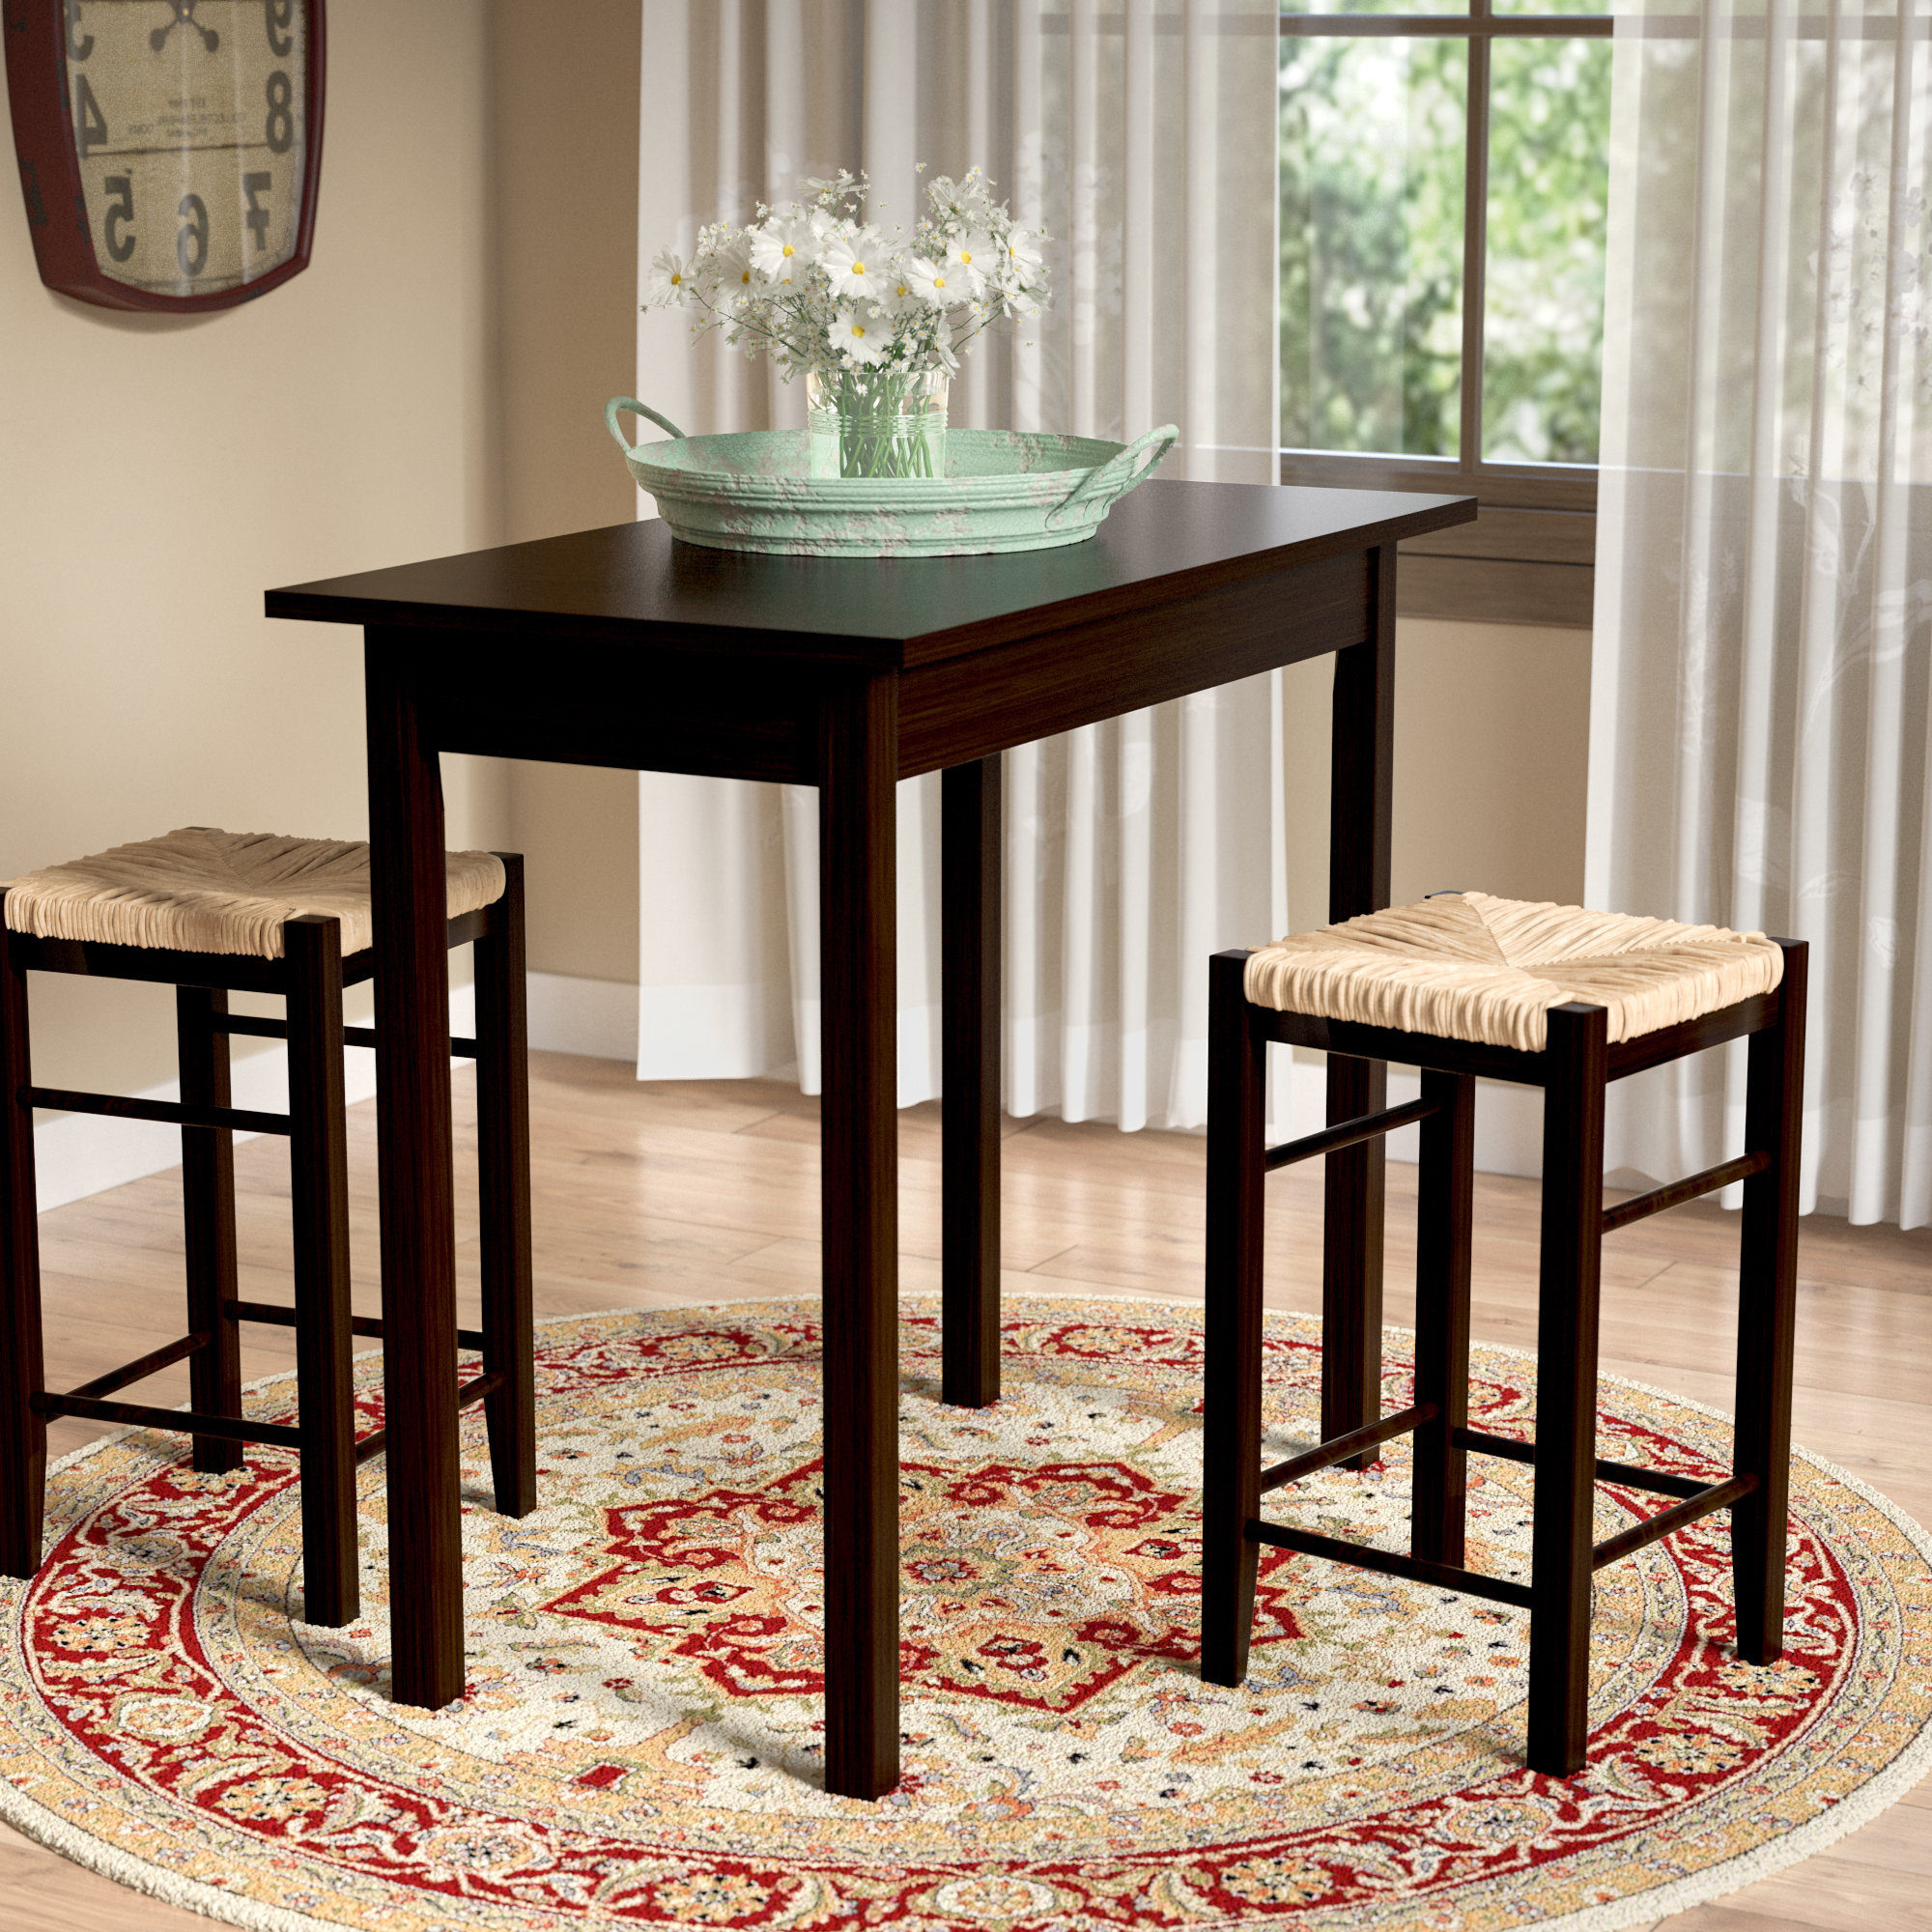 Winsome 3 Piece Counter Height Dining Sets Pertaining To 2019 August Grove Tenney 3 Piece Counter Height Dining Set & Reviews (View 18 of 25)